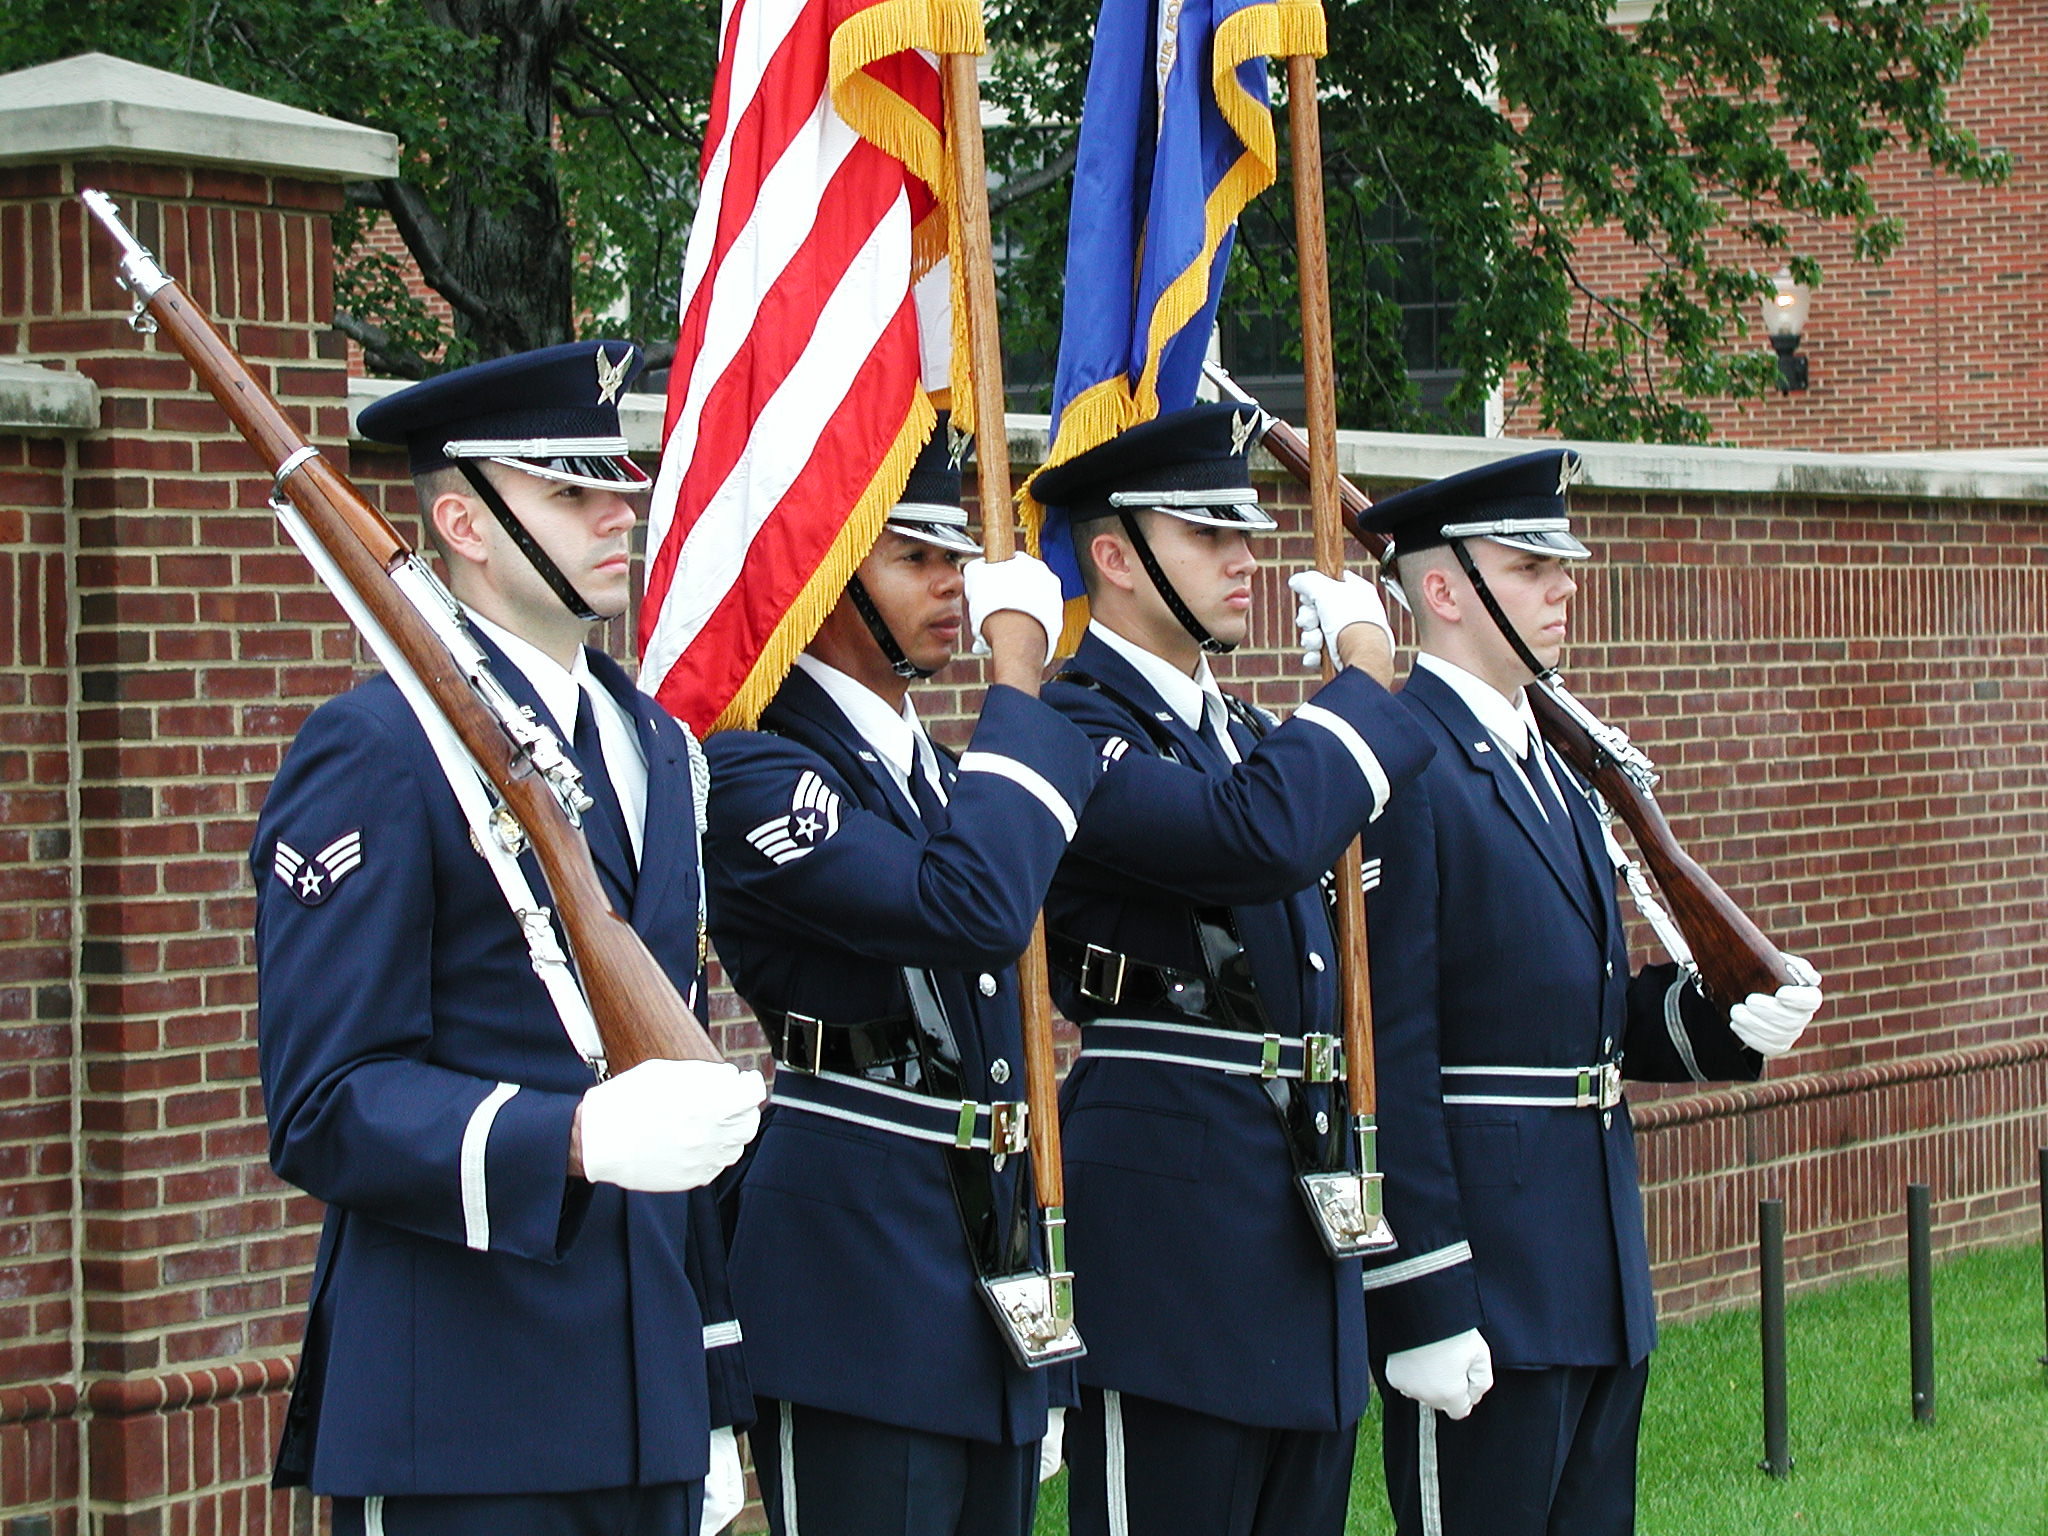 We were also impressed with the commitment of these young men and women to the Honor Guard, ...